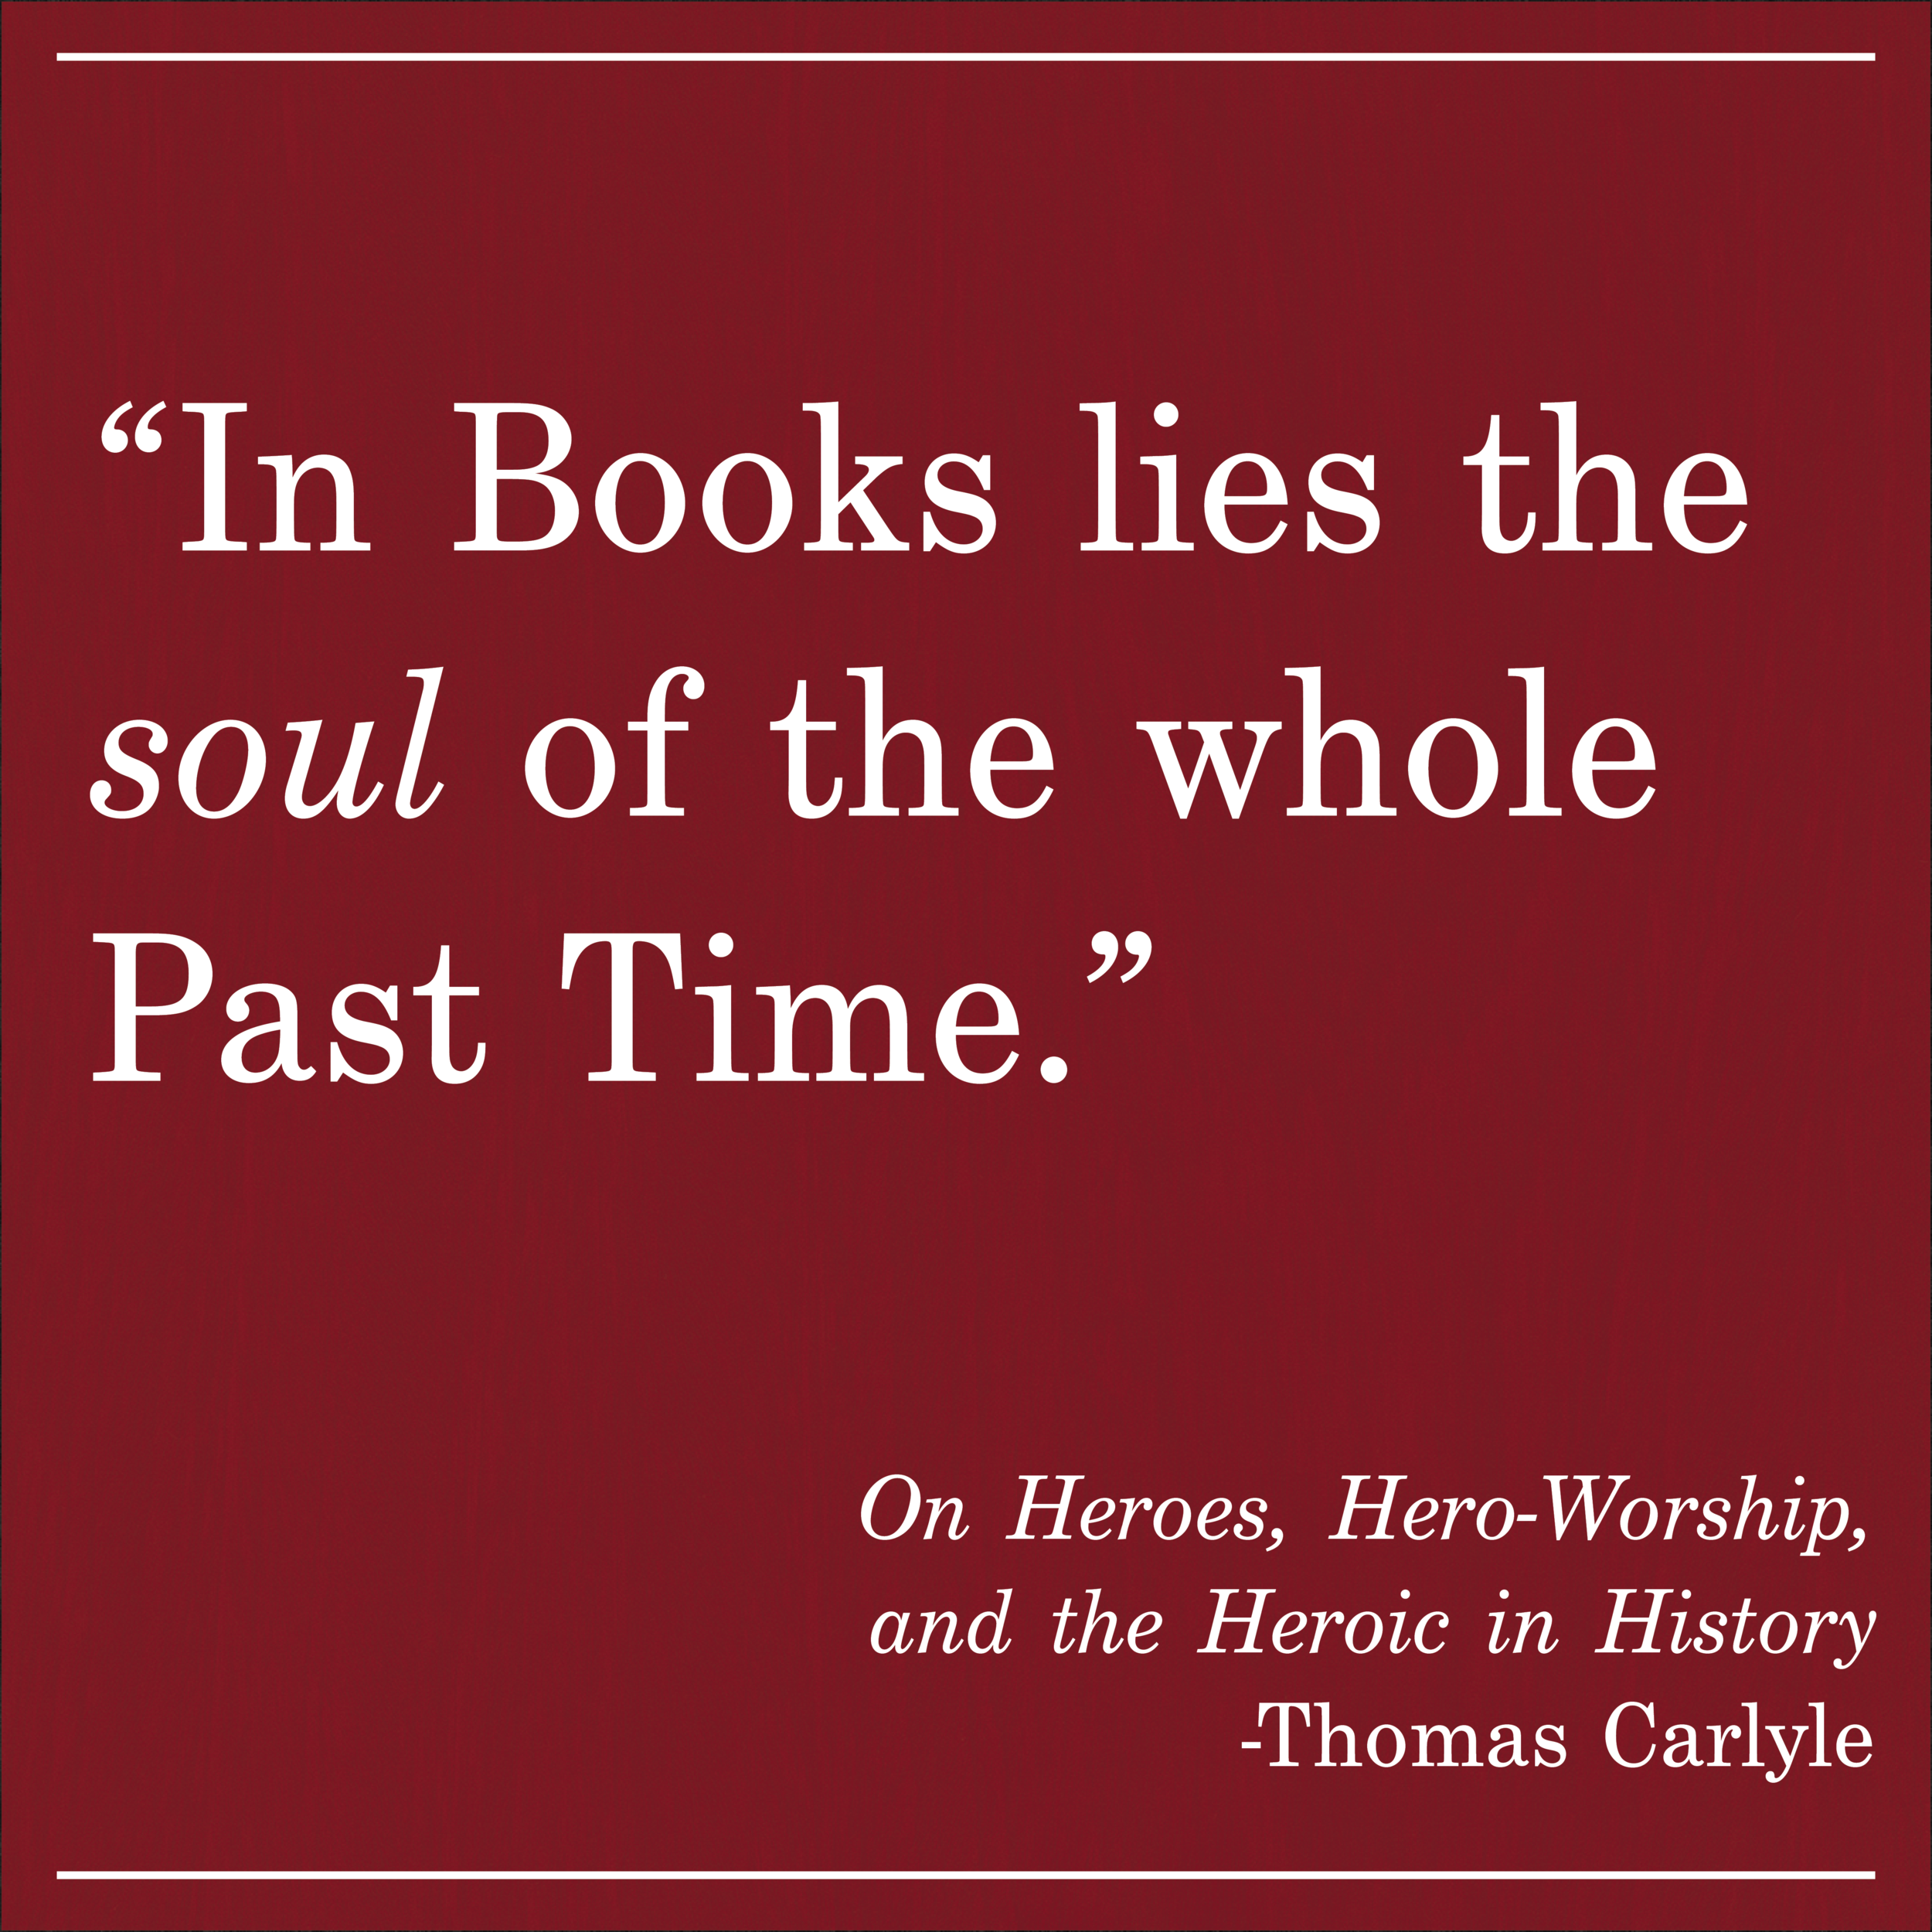 Daily Quote On Heroes and Hero Worship by Thomas Carlyle